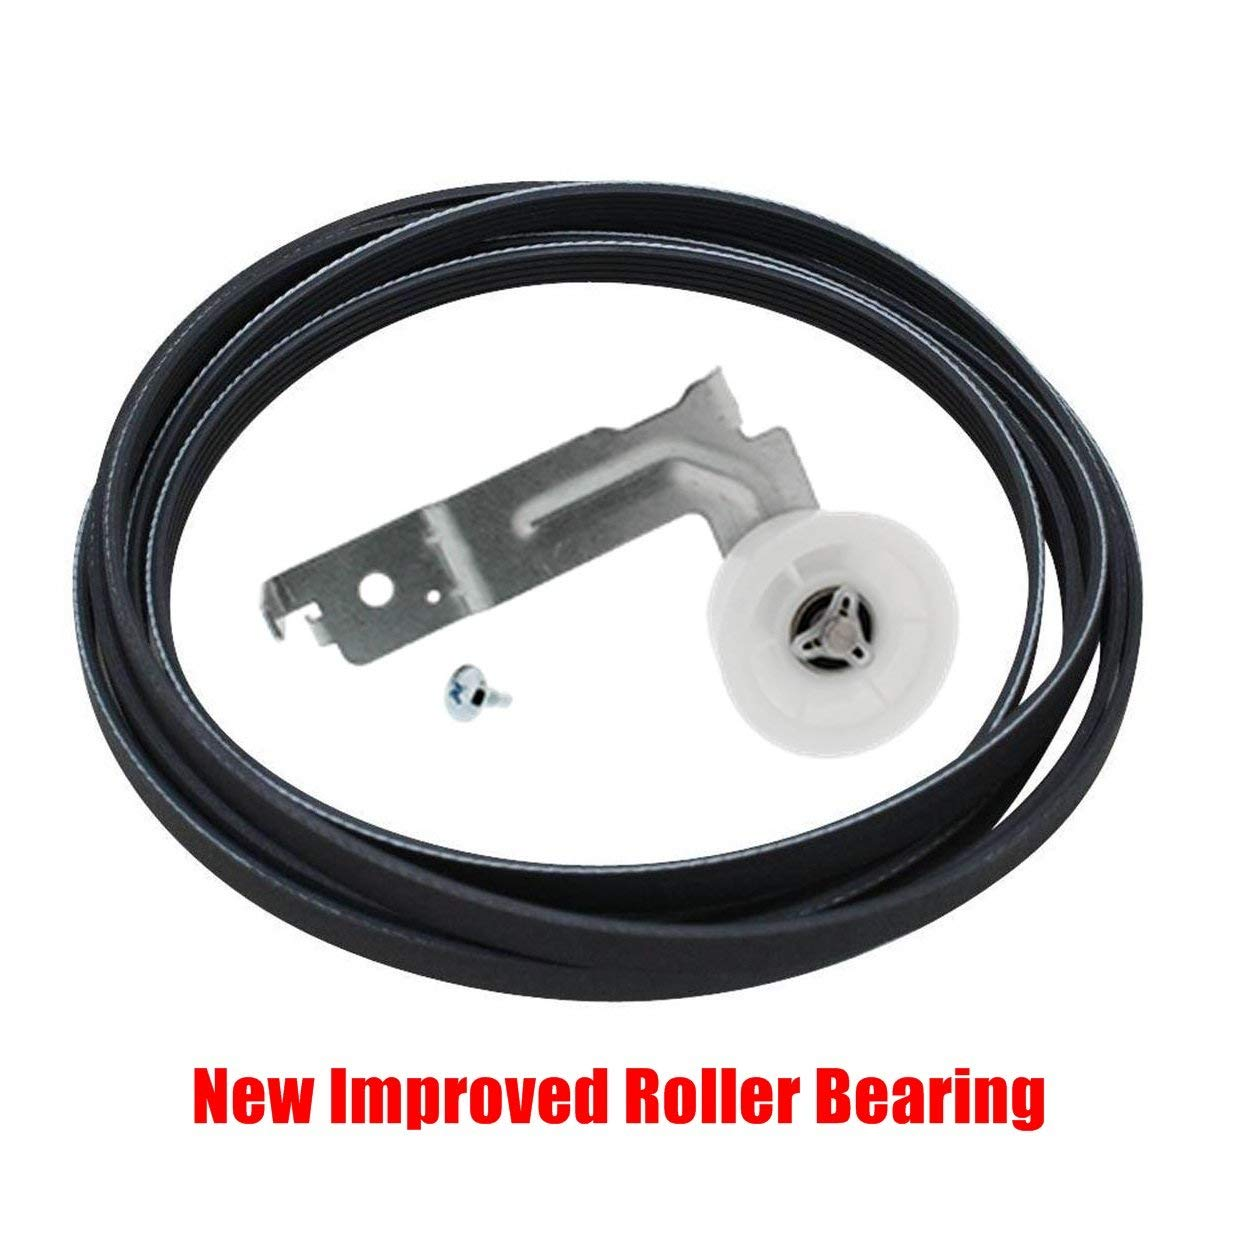 (EXP655) Dryer Belt & Idler Pulley Replaces WPW10205415, 12002777, W10205415, PS11750299, AP6017004, AP4010261, PS2004052